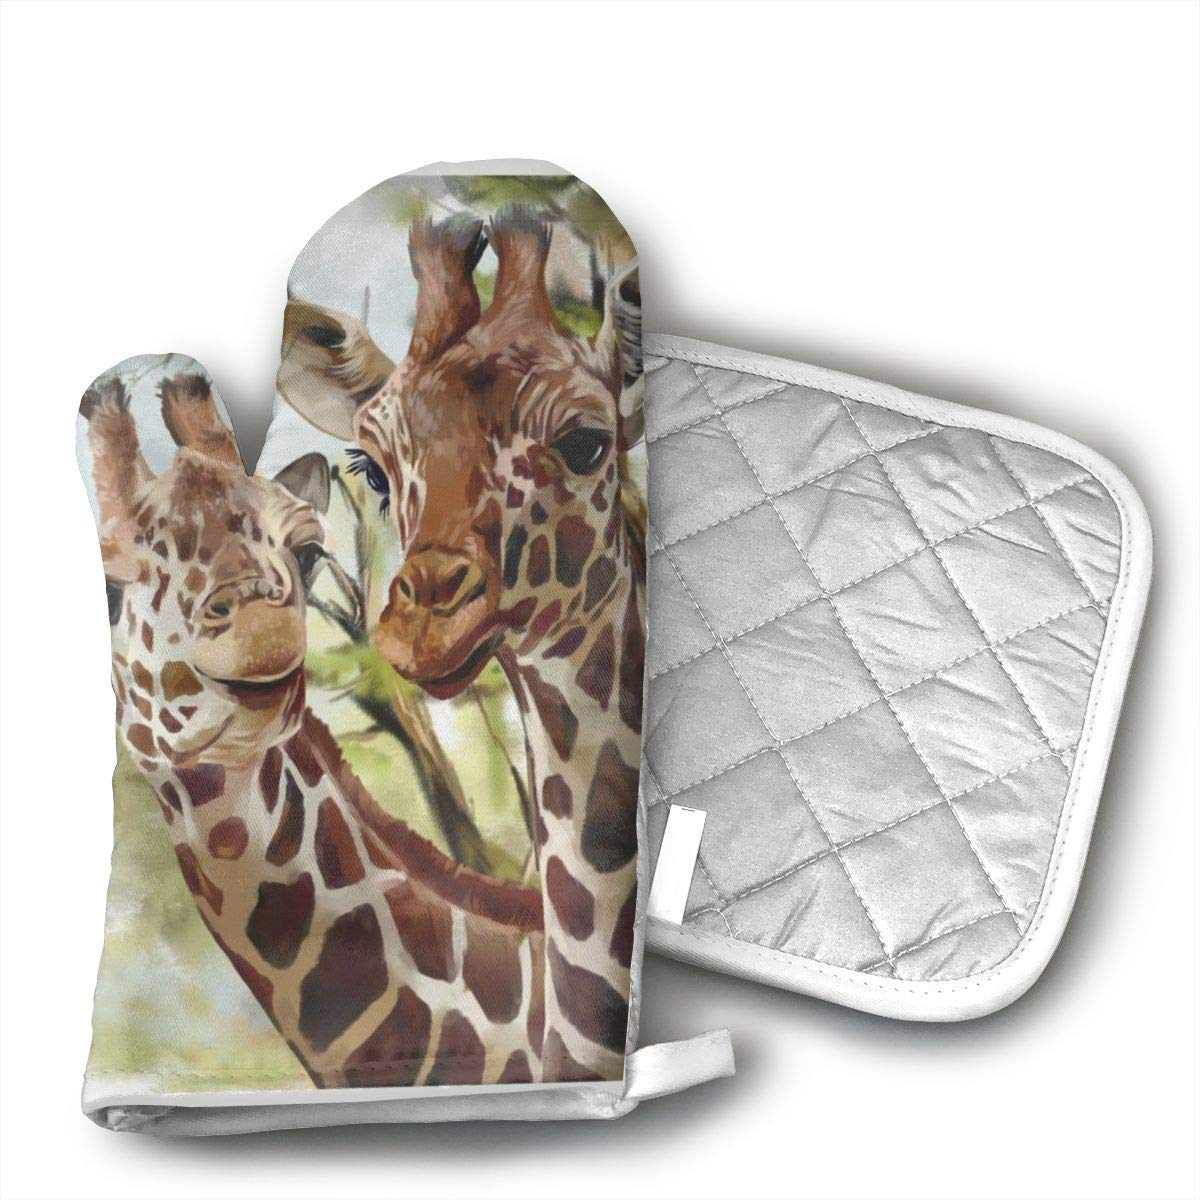 Wiqo9 Watercolor Deer Giraffe Long Oven Mitts and Pot Holders Kitchen Mitten Cooking Gloves,Cooking, Baking, BBQ.